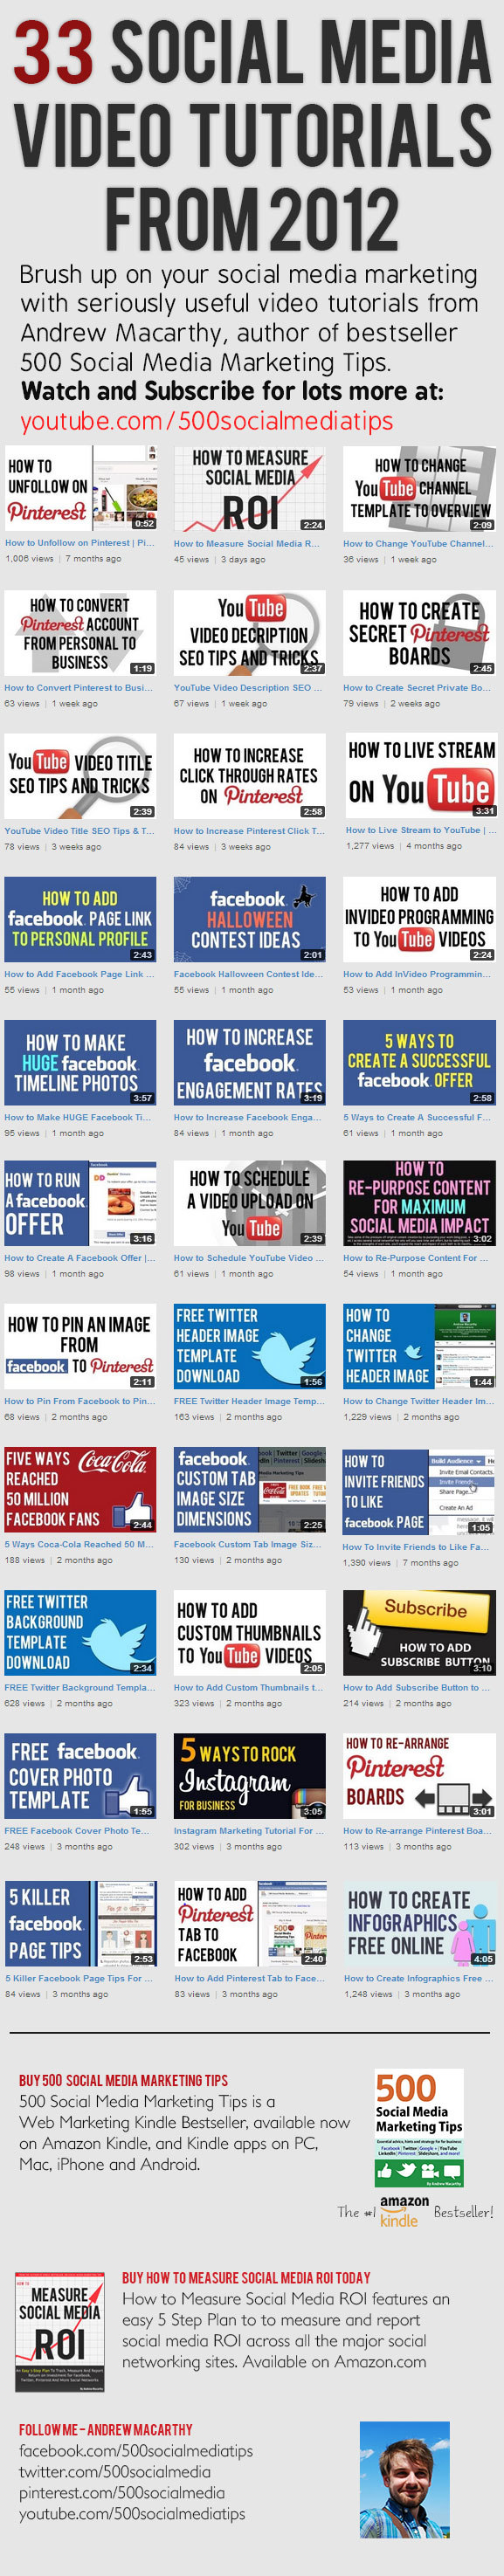 33-social-media-video-tutorials-infographic.jpg